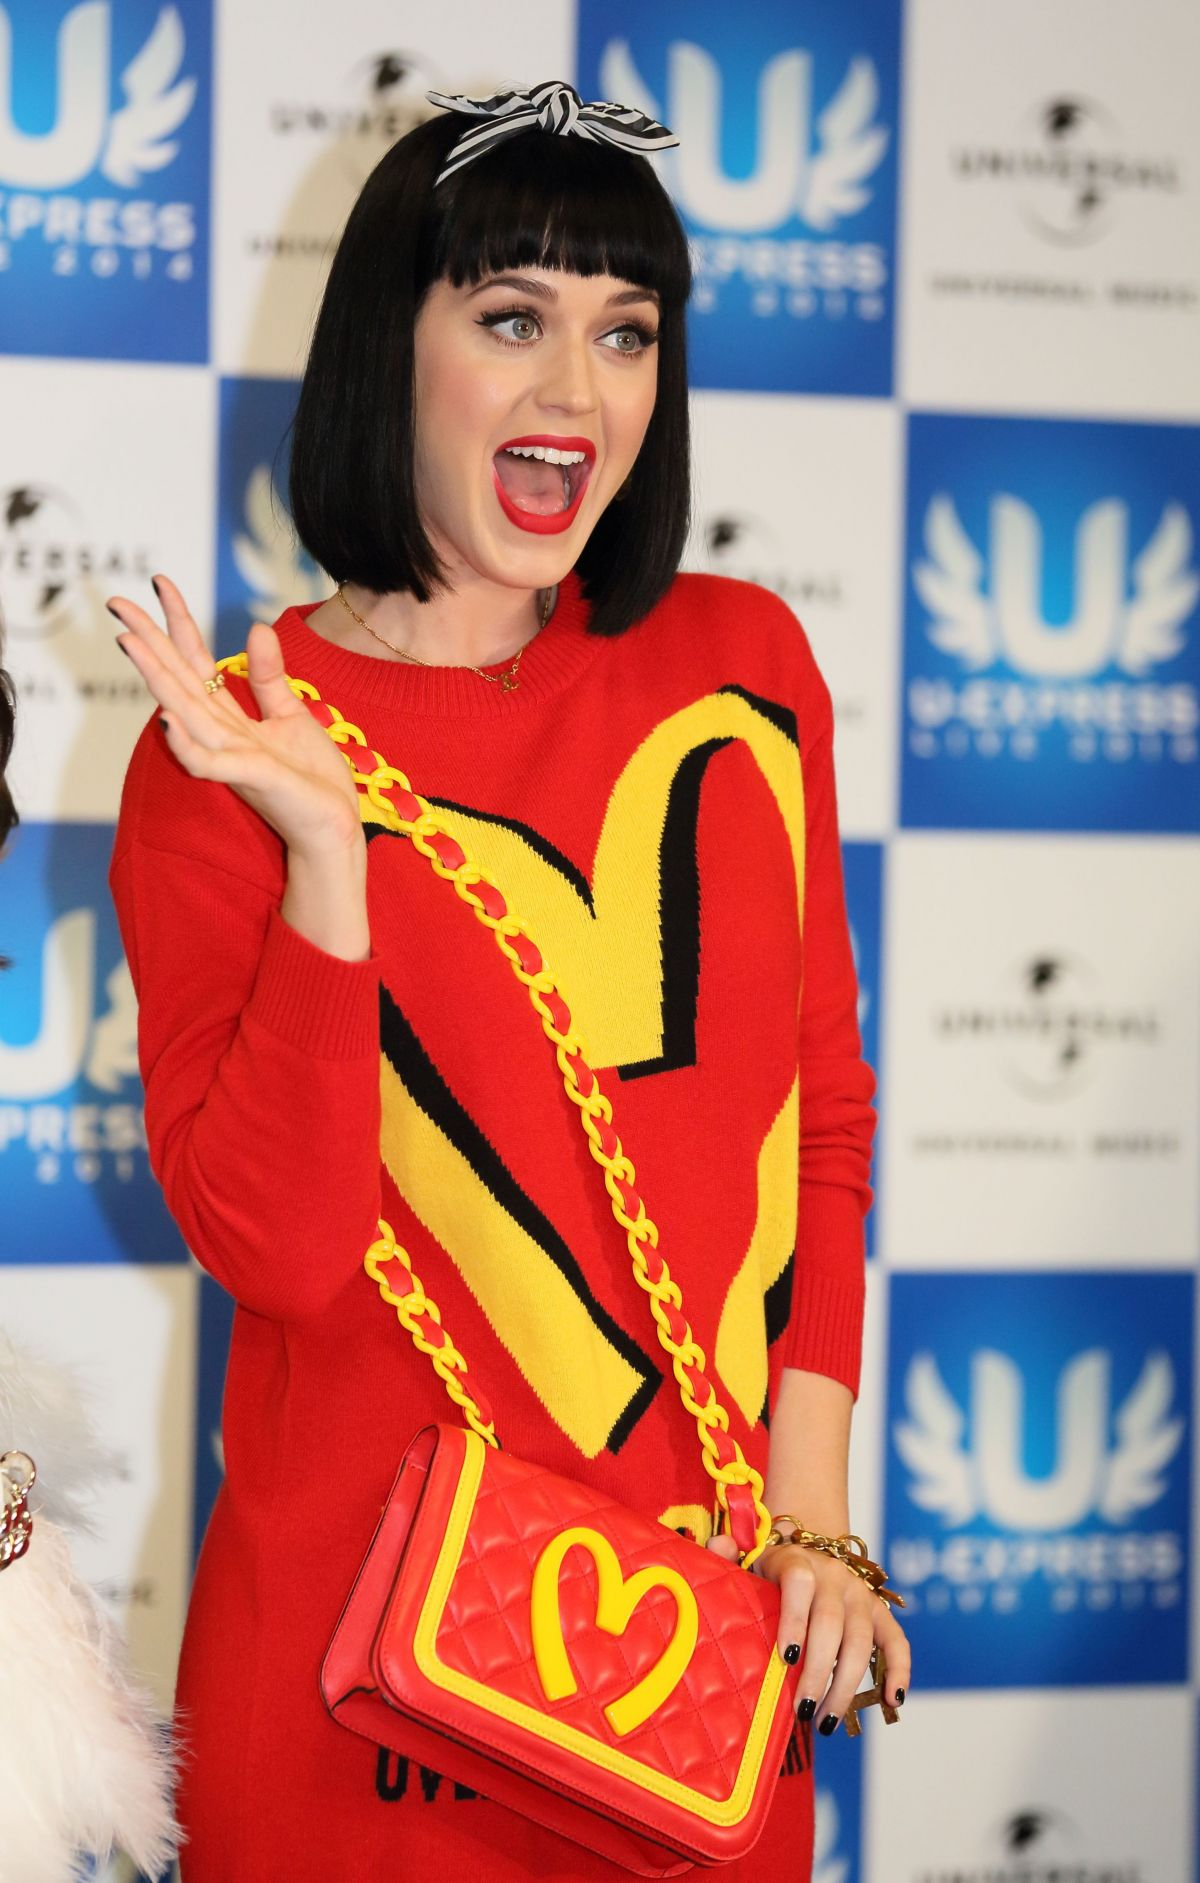 KATY PERRY at U Express Live Press Conference in Japan